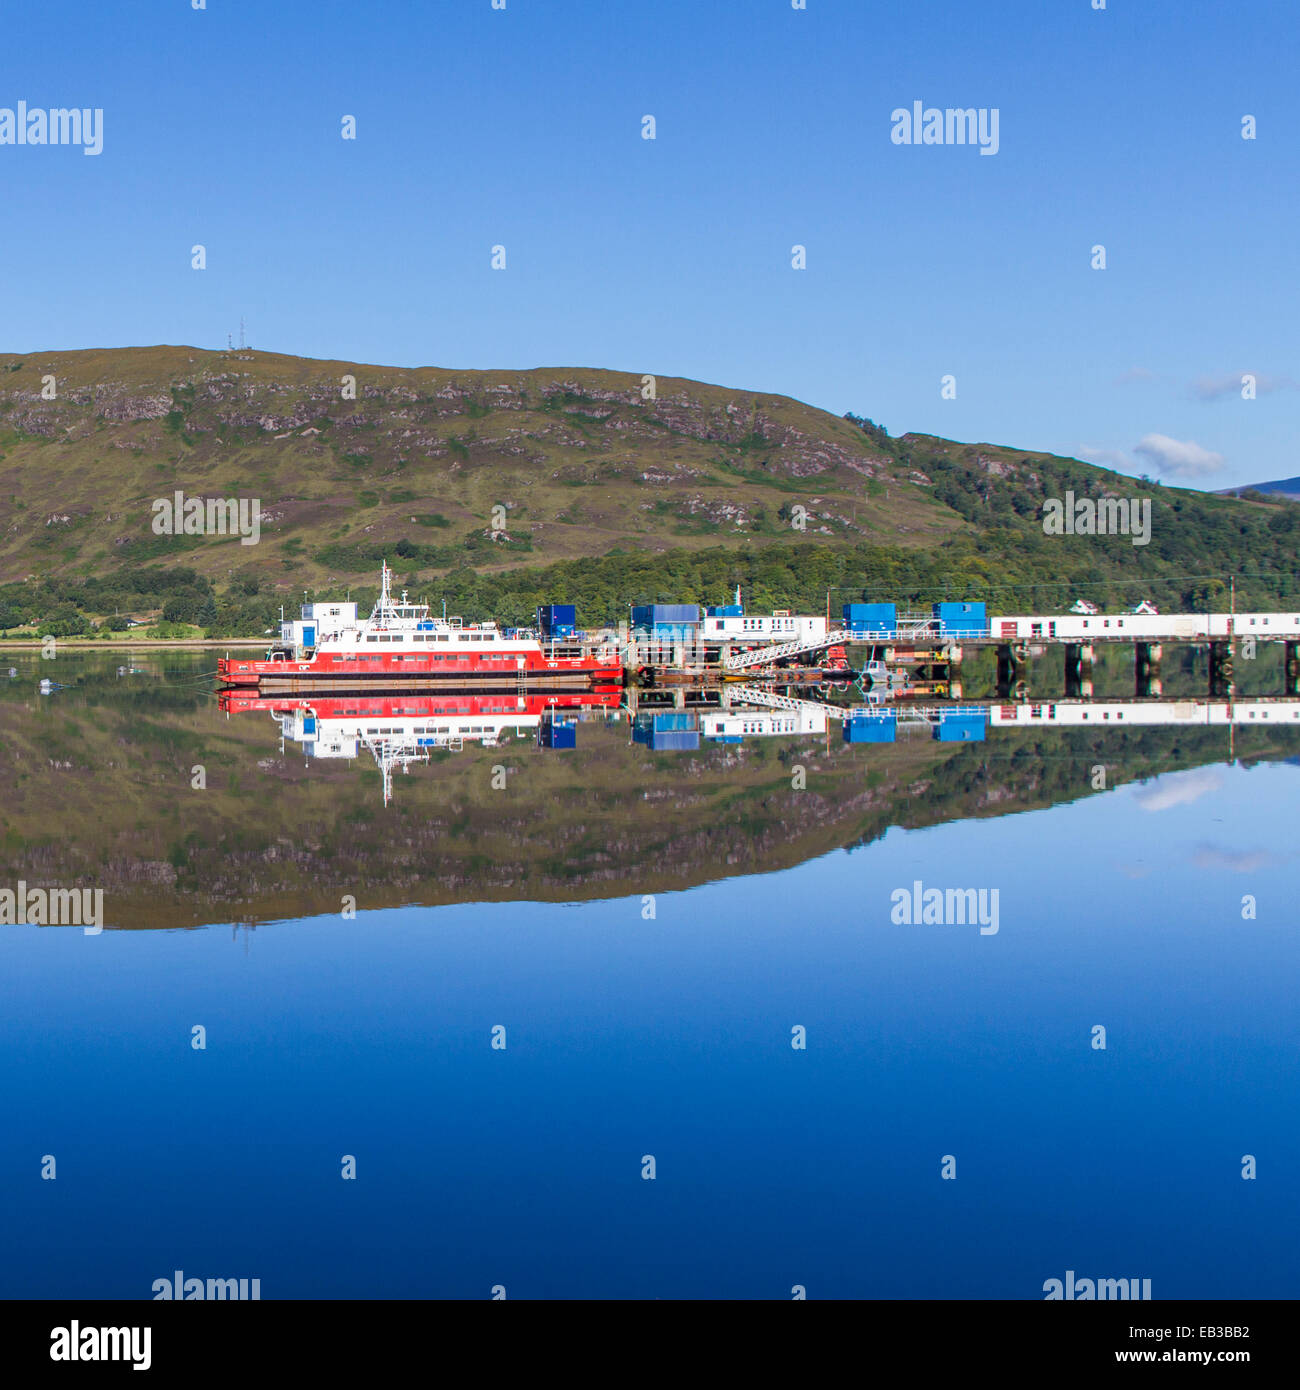 UK, Scotland, View of harbor and hill reflecting in water - Stock Image